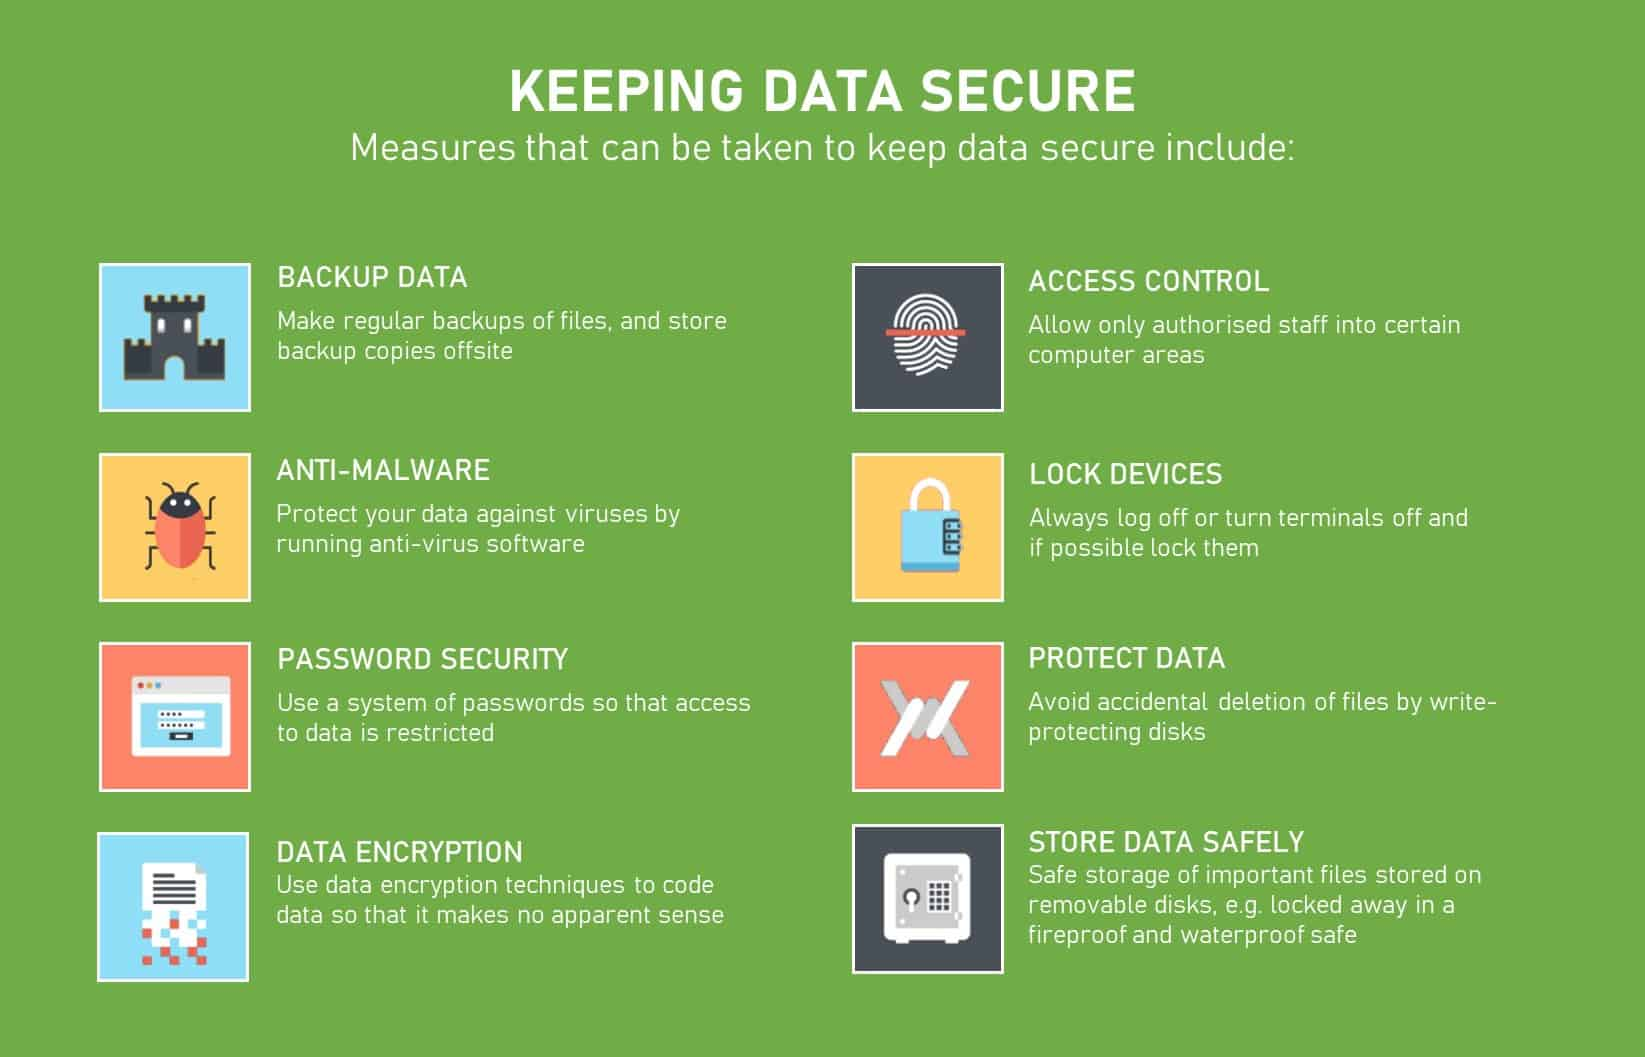 data security best practices keeping data secure